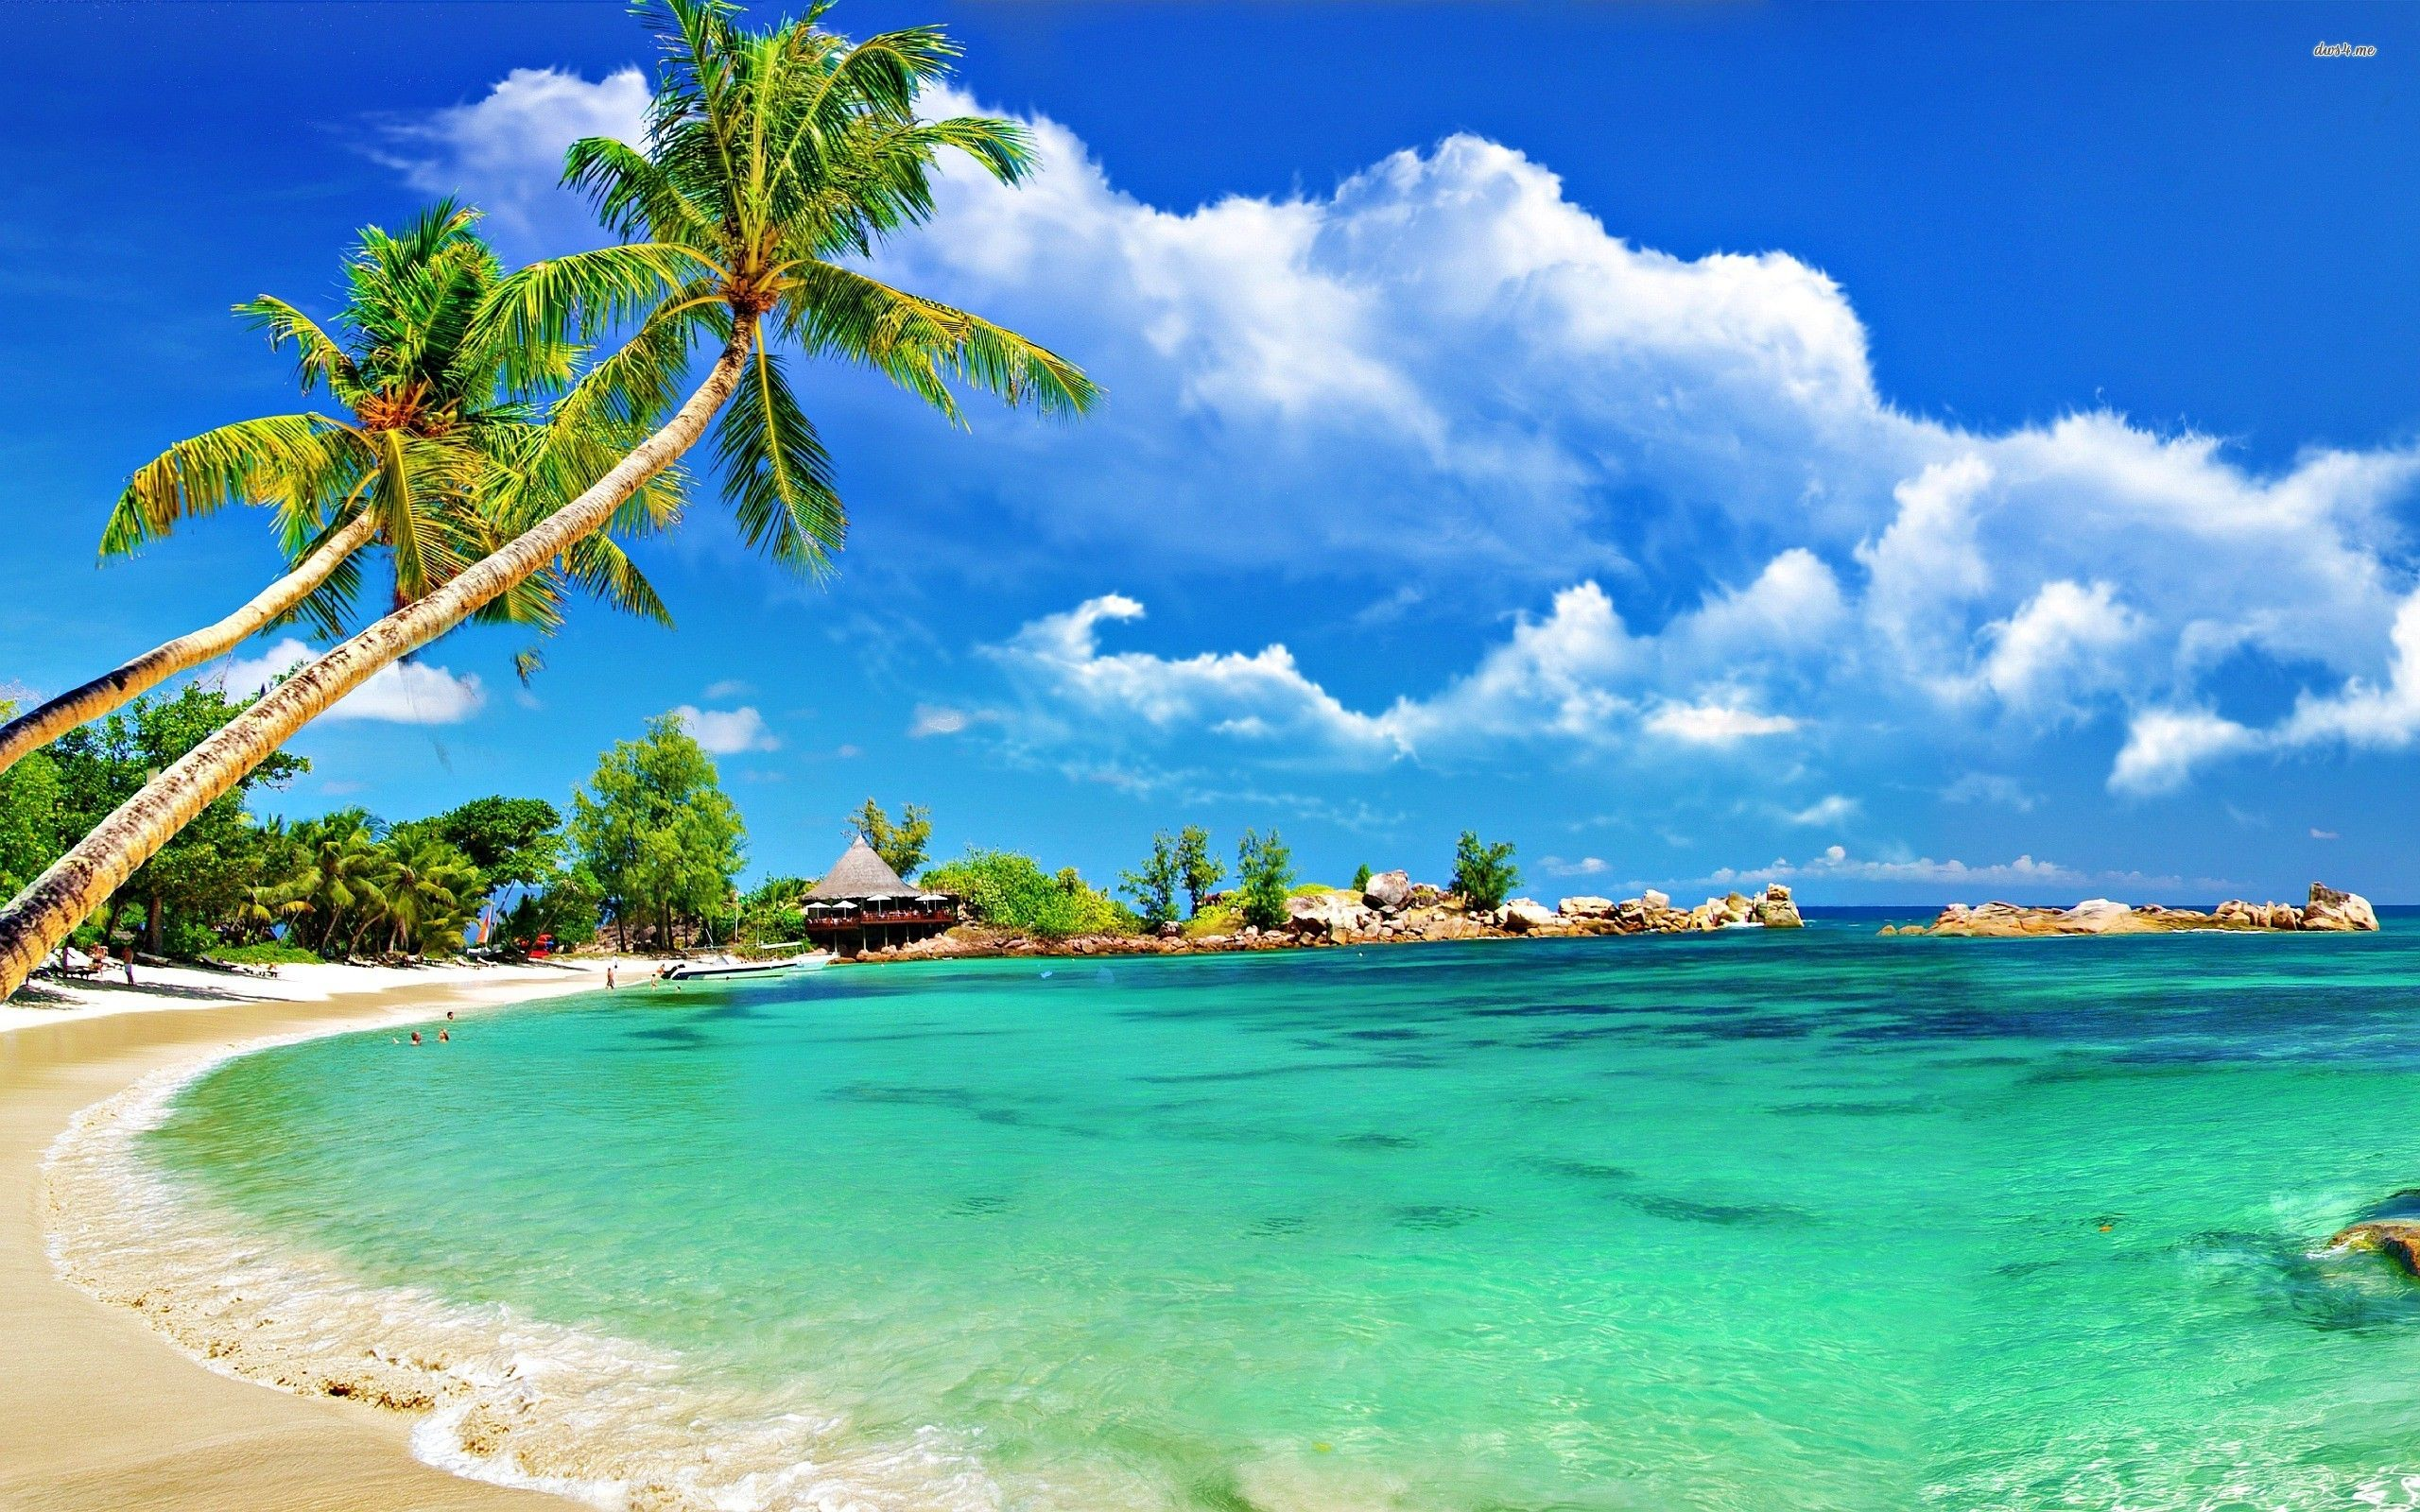 HD Beach Desktop Backgrounds 30 Background Pictures 2560x1600